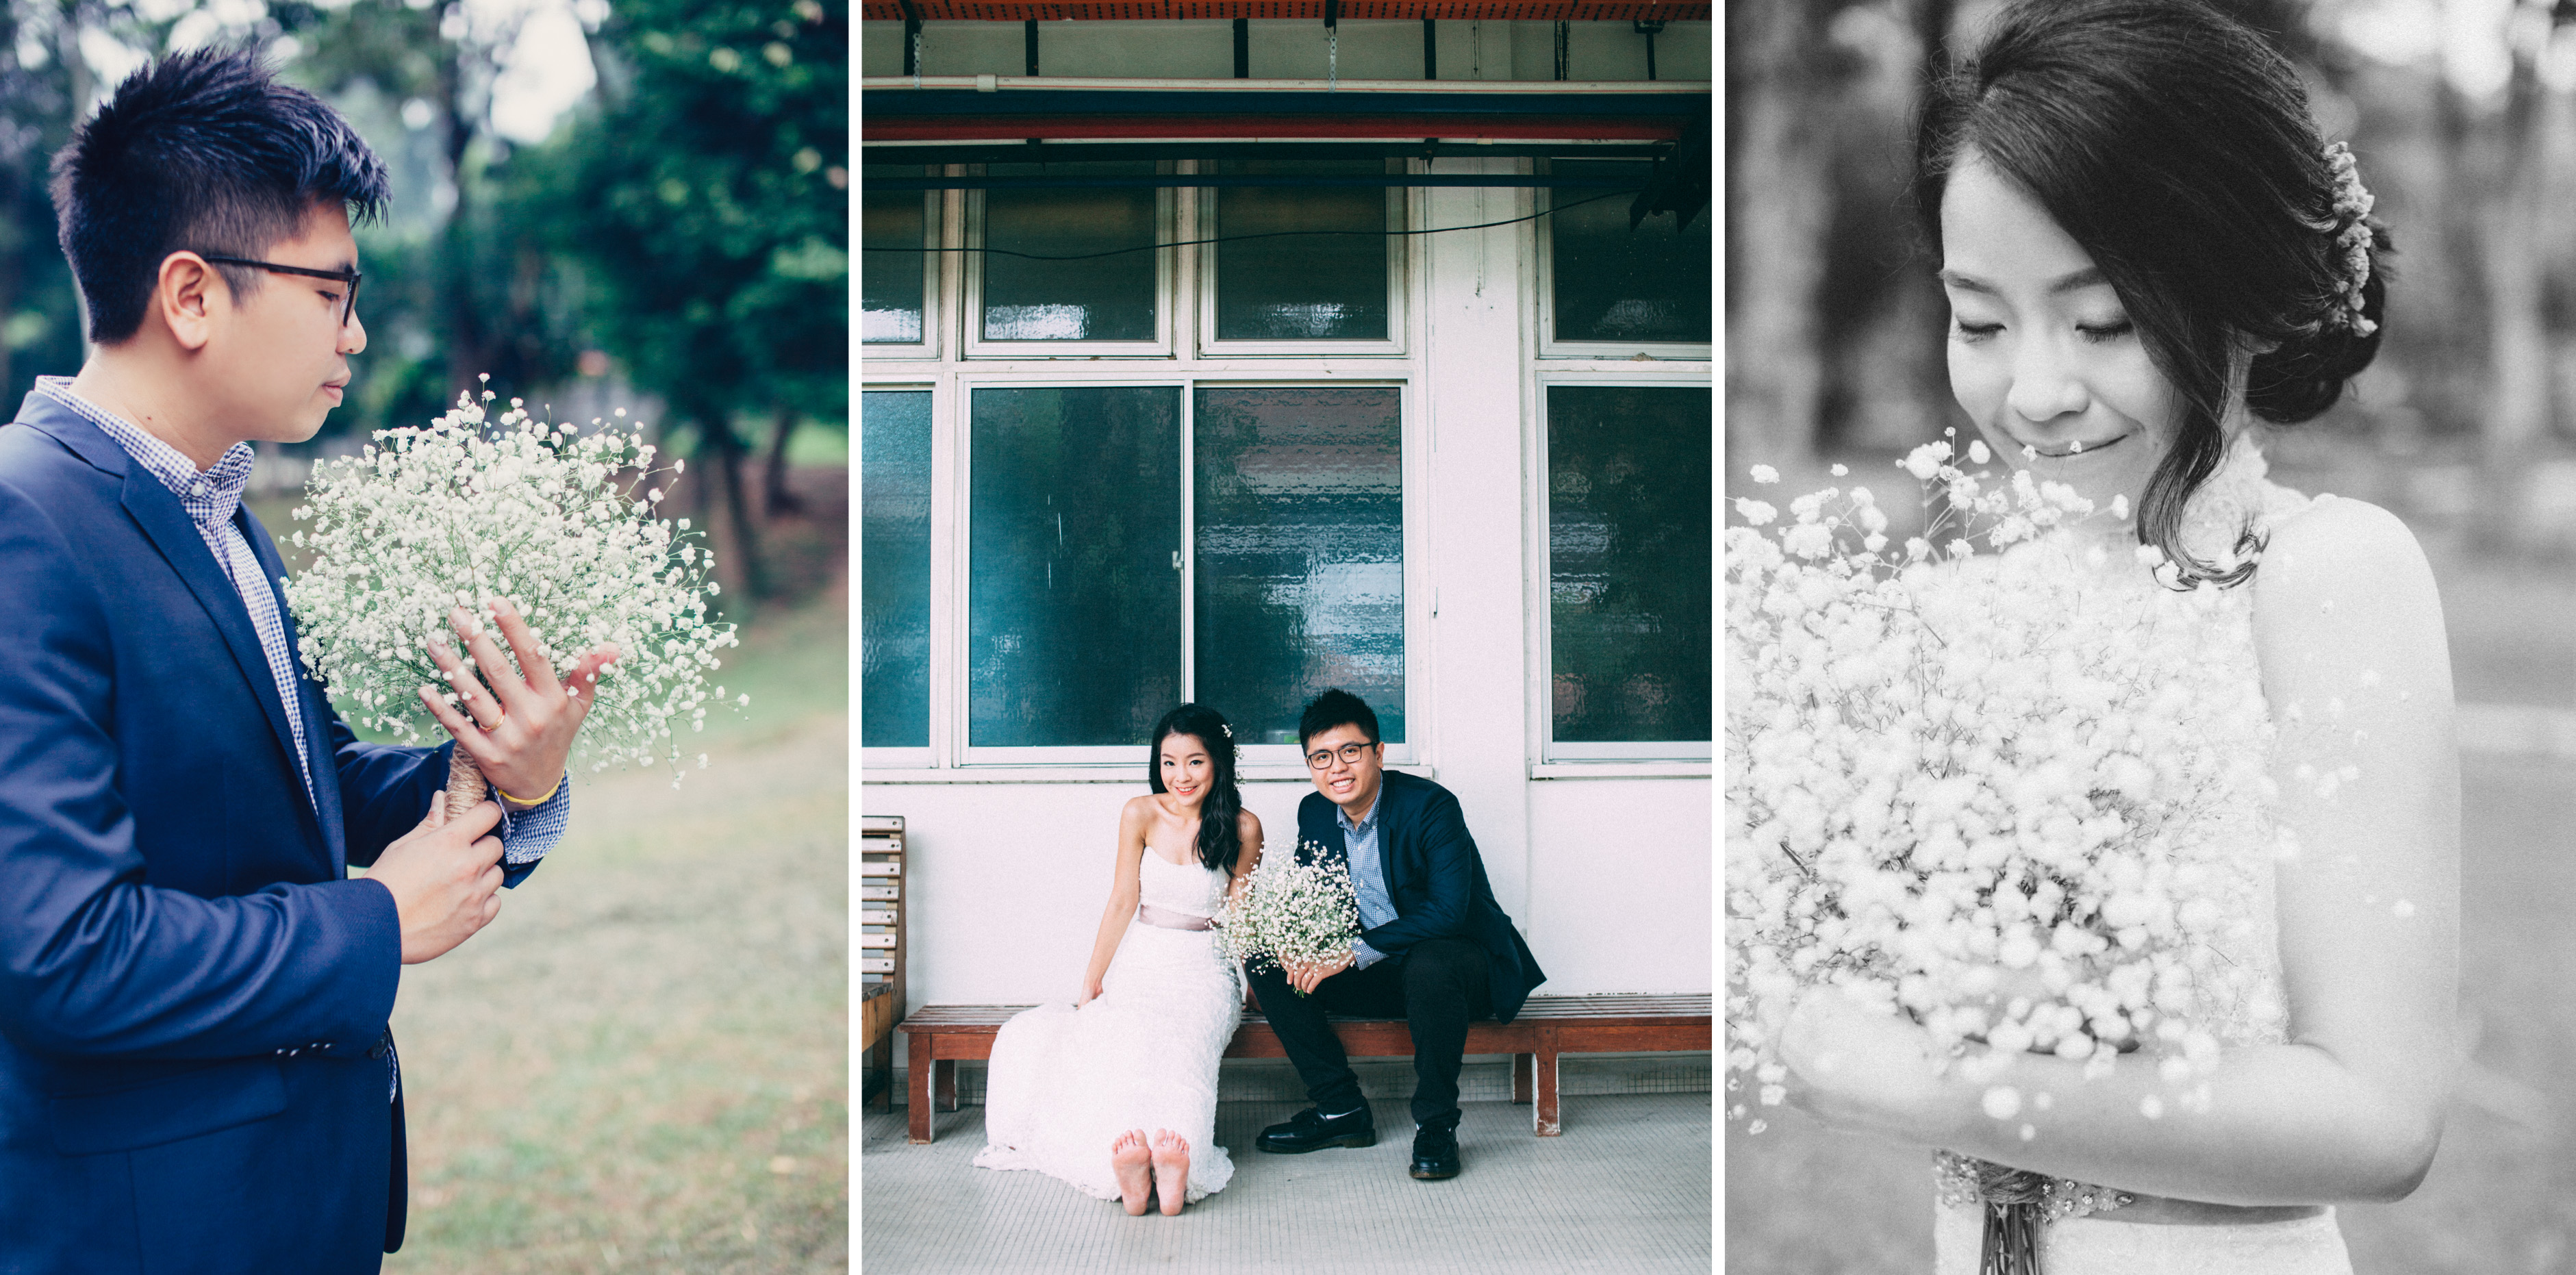 5-hellojanelee-malaysia-wedding-photographer-lake-garden-tinajackson-prewedding